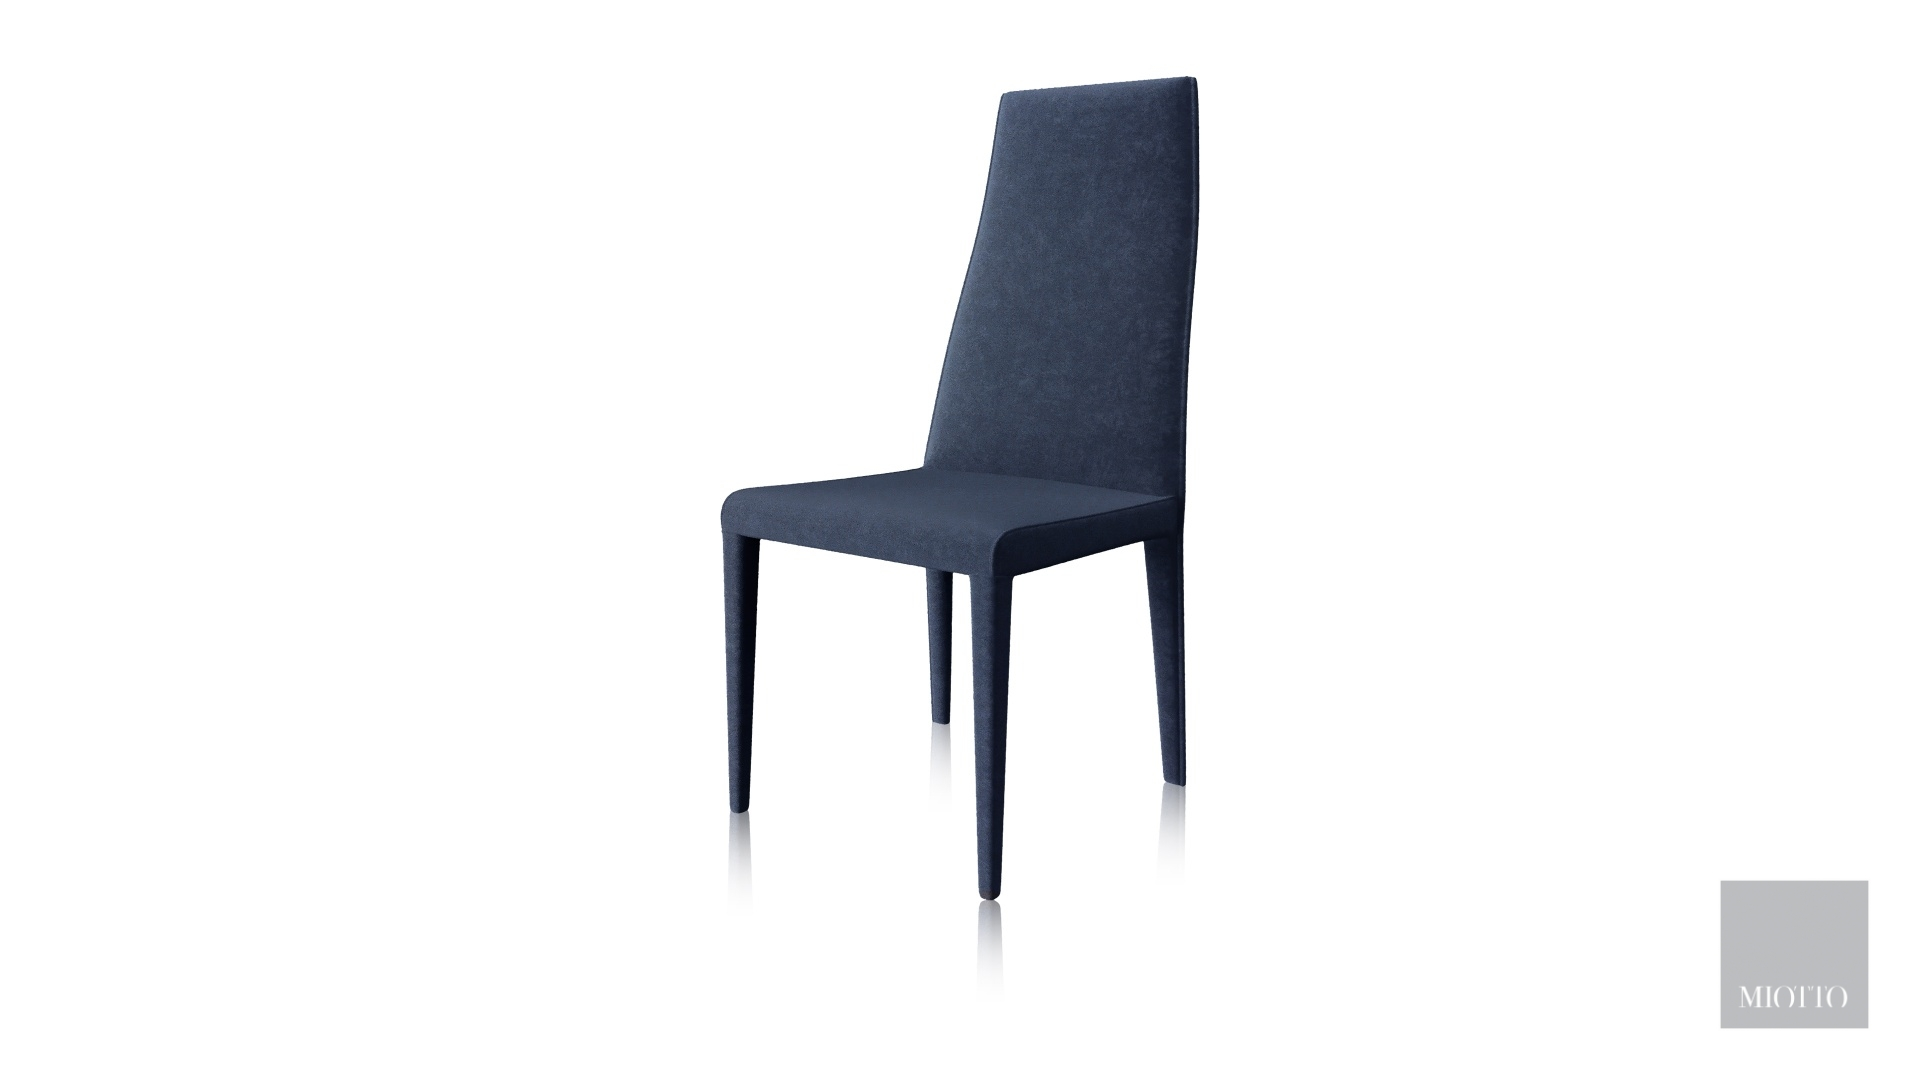 miotto_Rigano dining chair blue miotto furniture